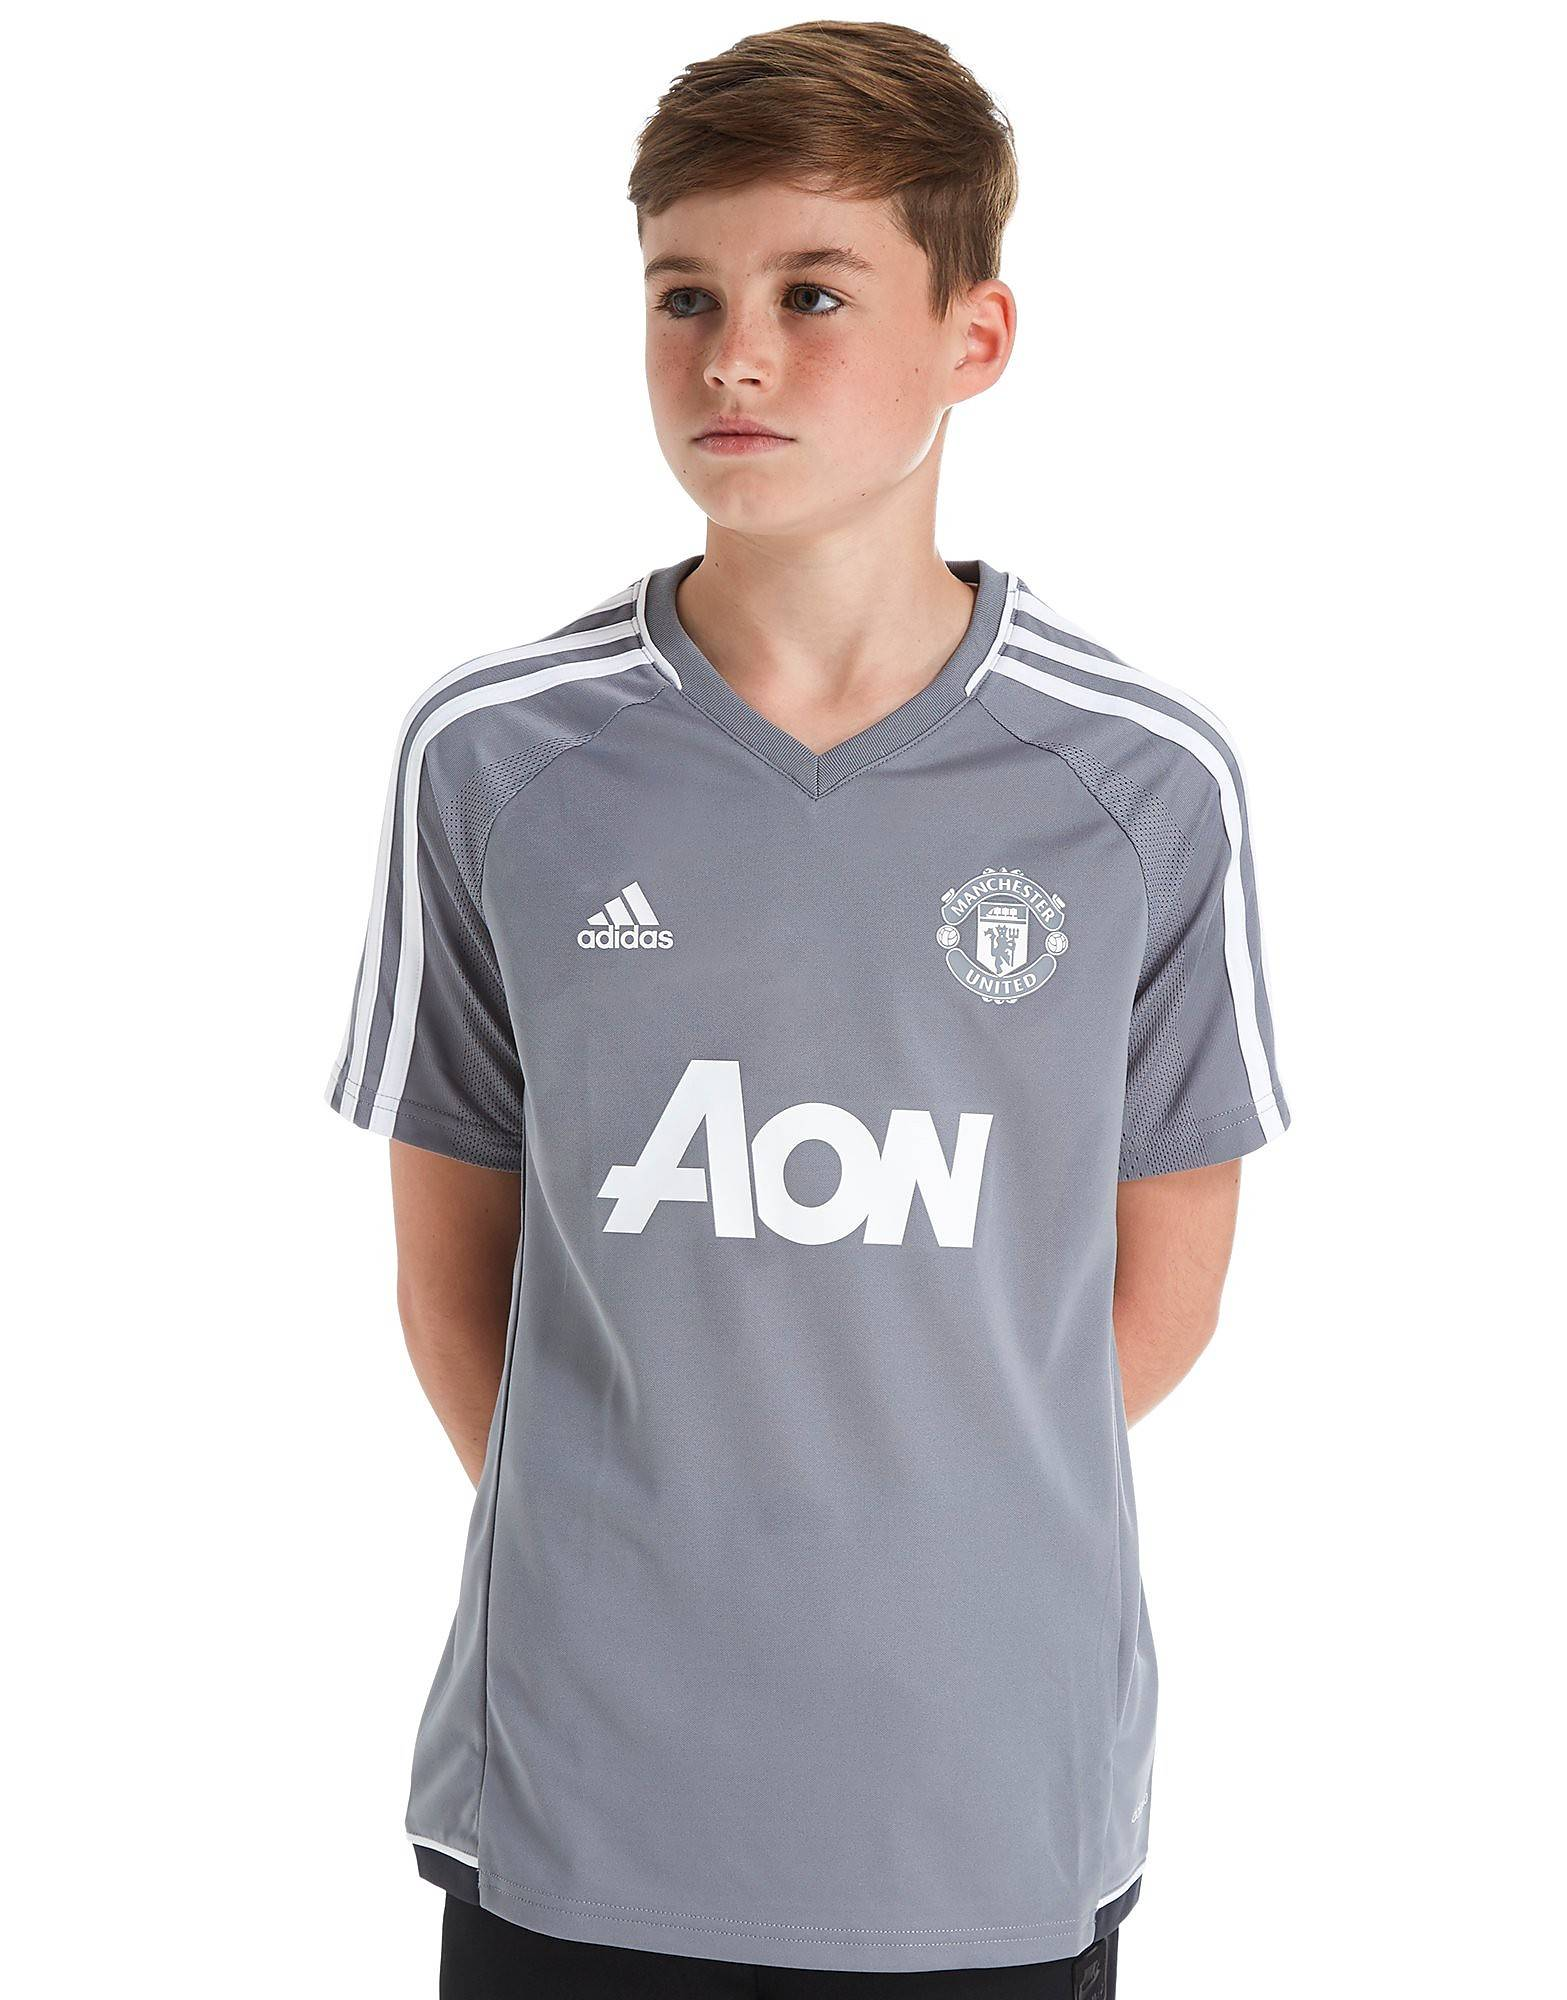 Image of Adidas Manchester United 2017 Training Shirt Junior - Kids, Harmaa